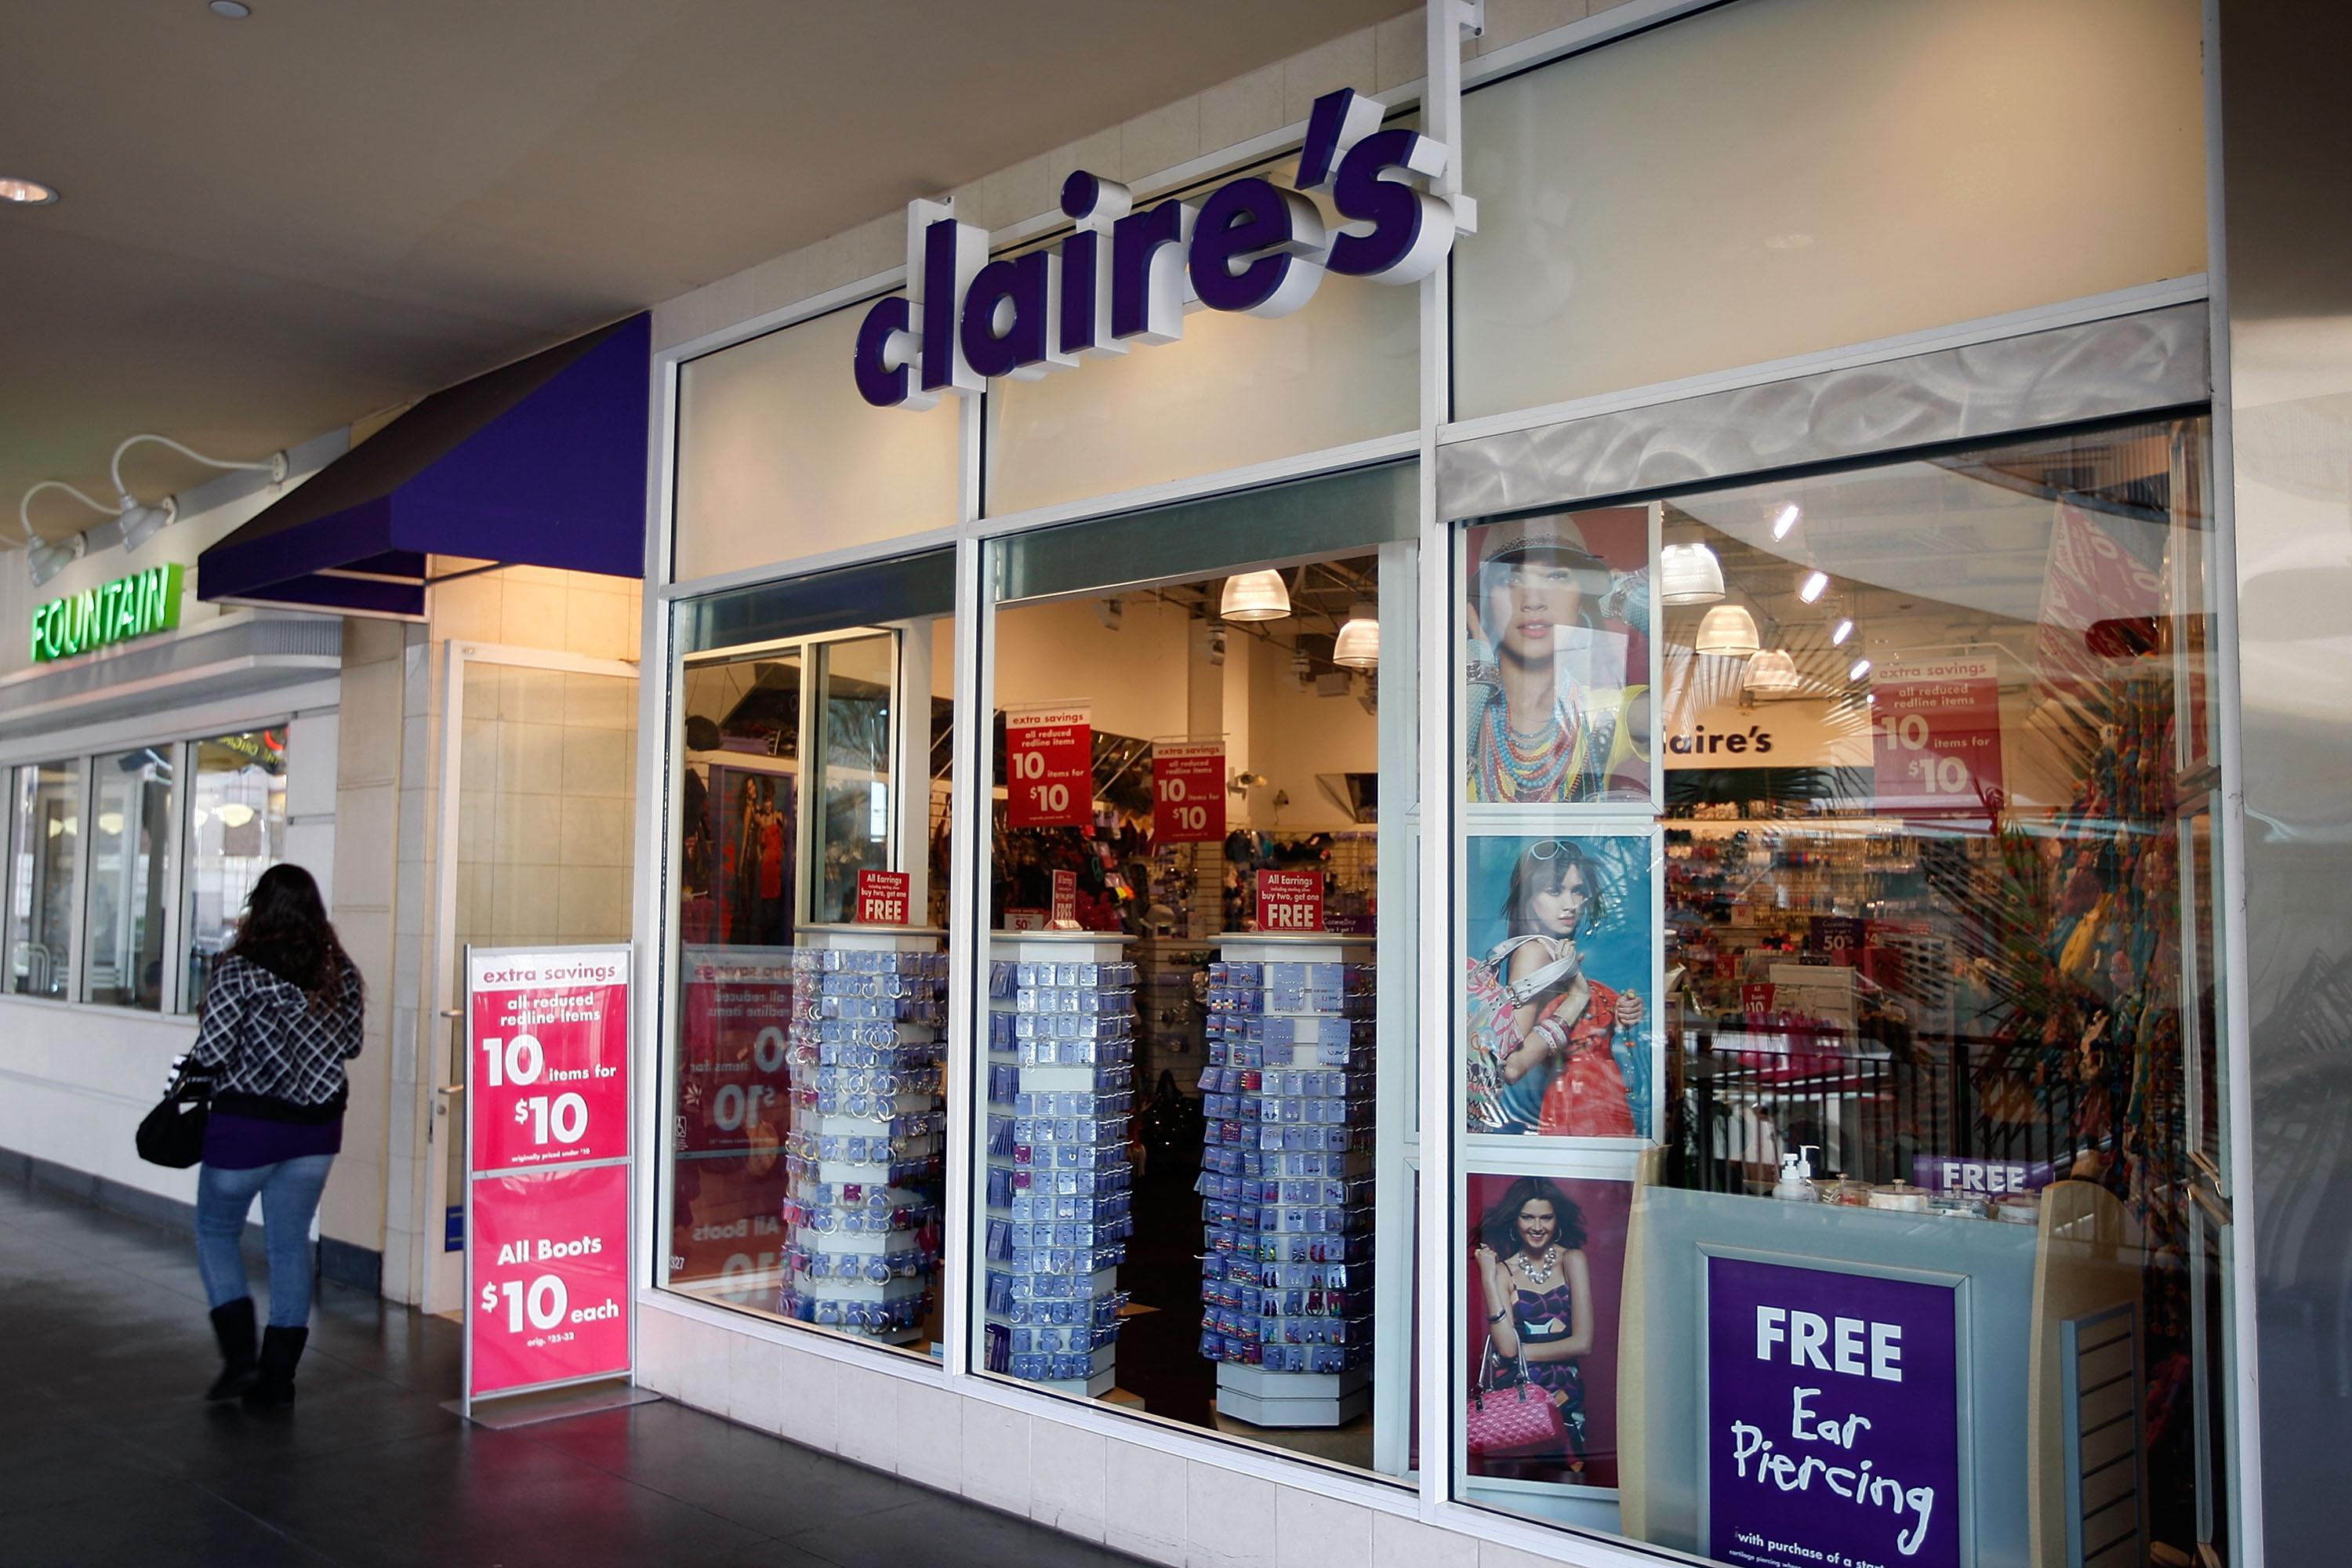 3 easy halloween costumes you can get at claire's, from spider girl